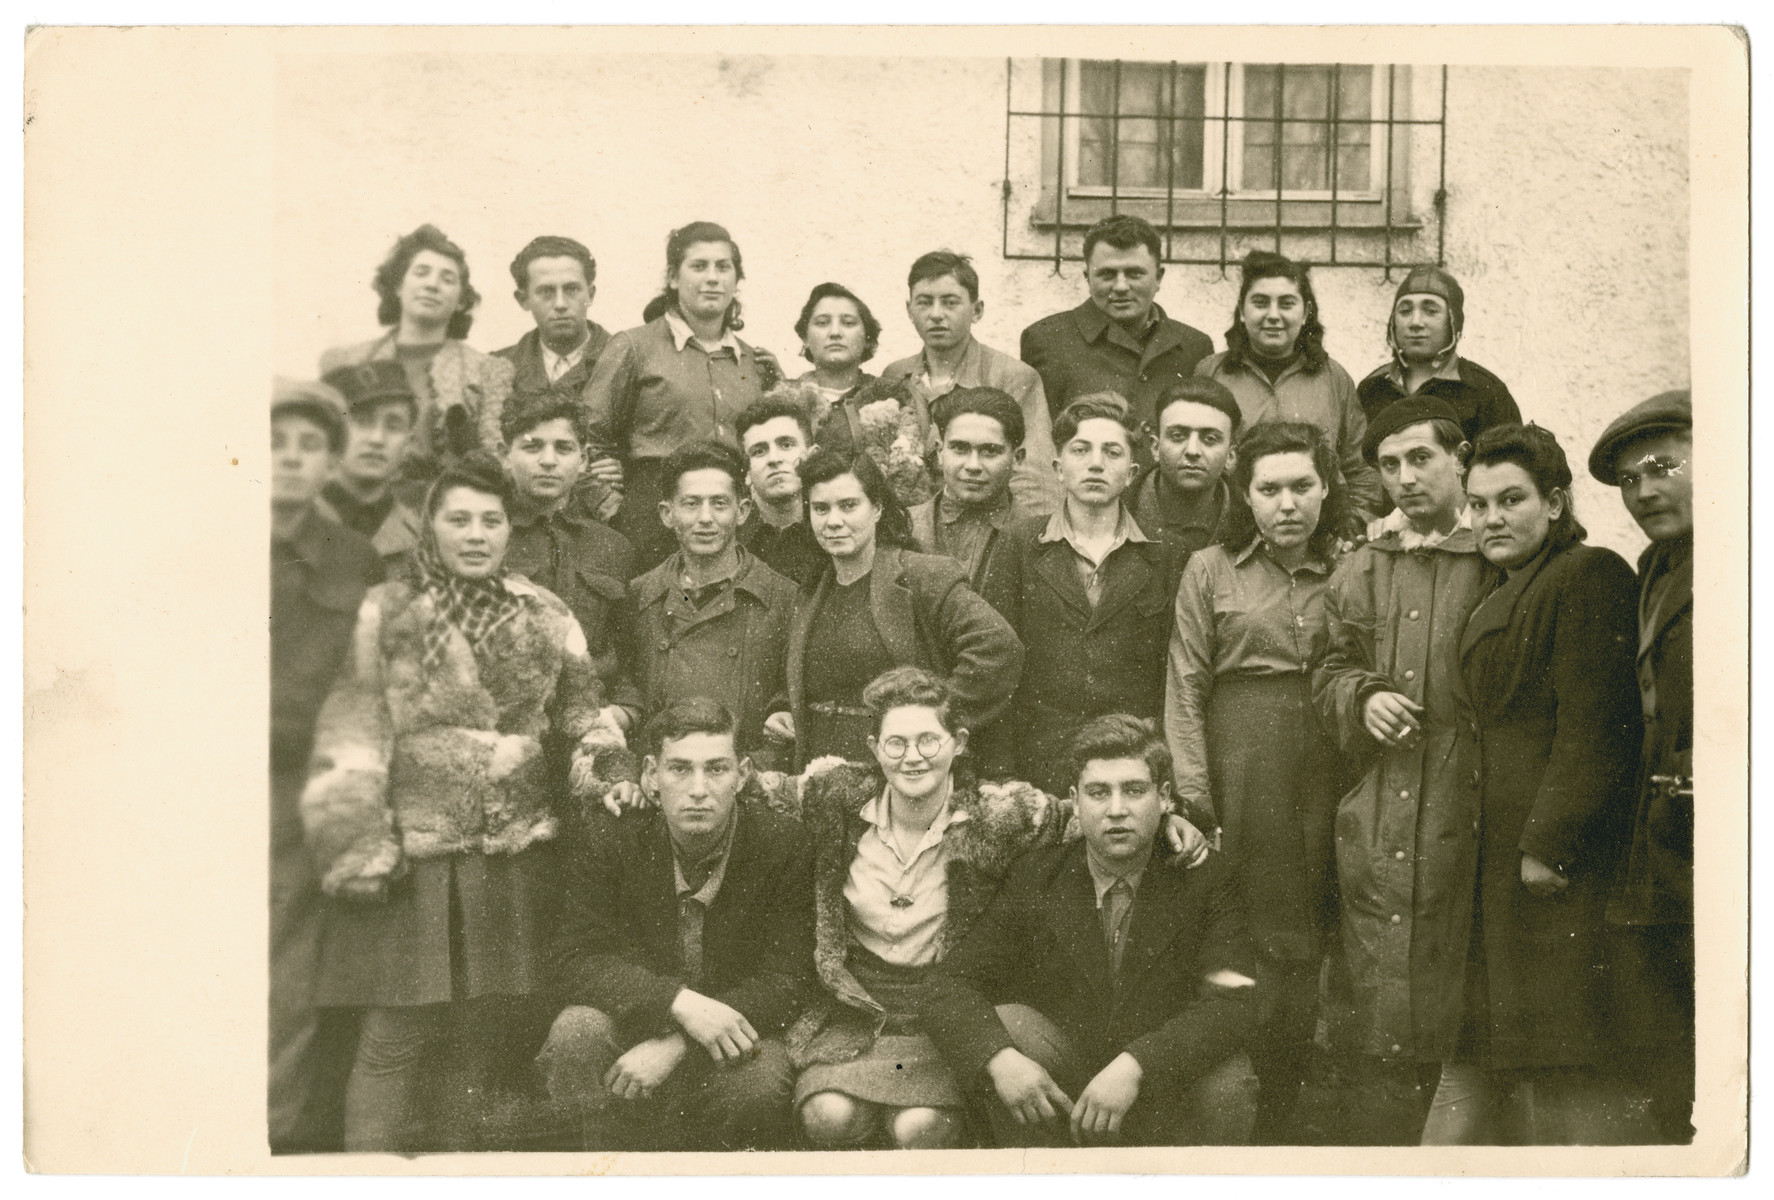 Group portrait of young people in the Landsberg displaced persons camp.